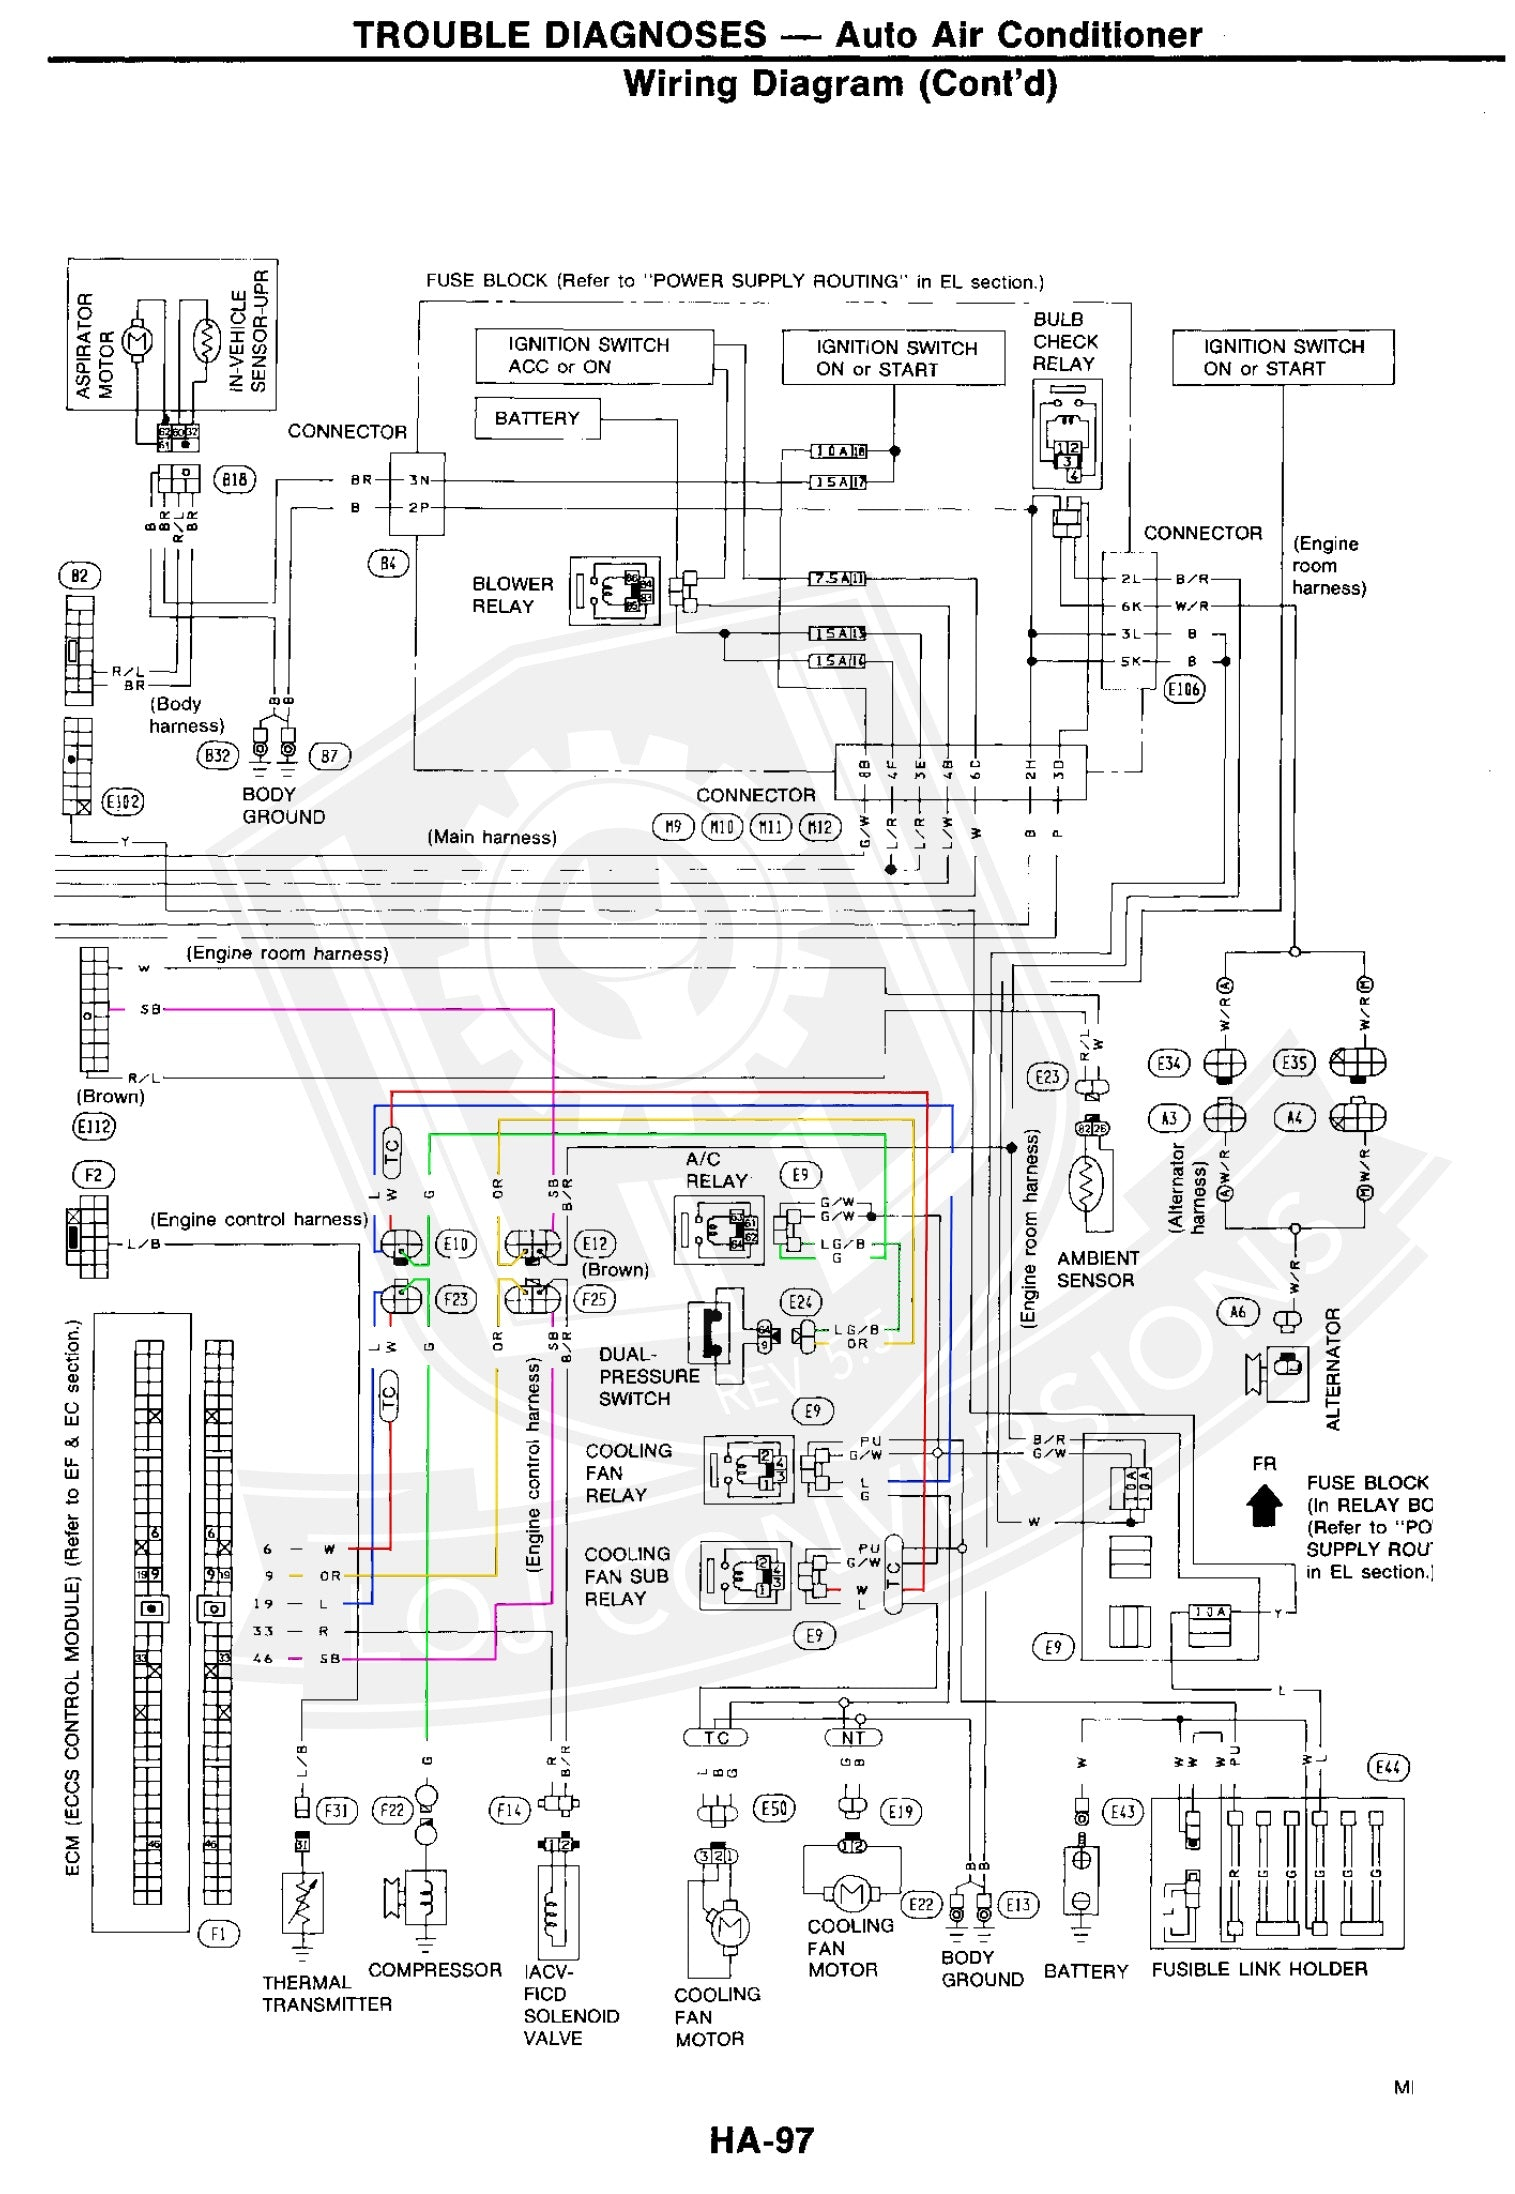 Sensational Nissan Engine Diagram Basic Electronics Wiring Diagram Wiring 101 Archstreekradiomeanderfmnl